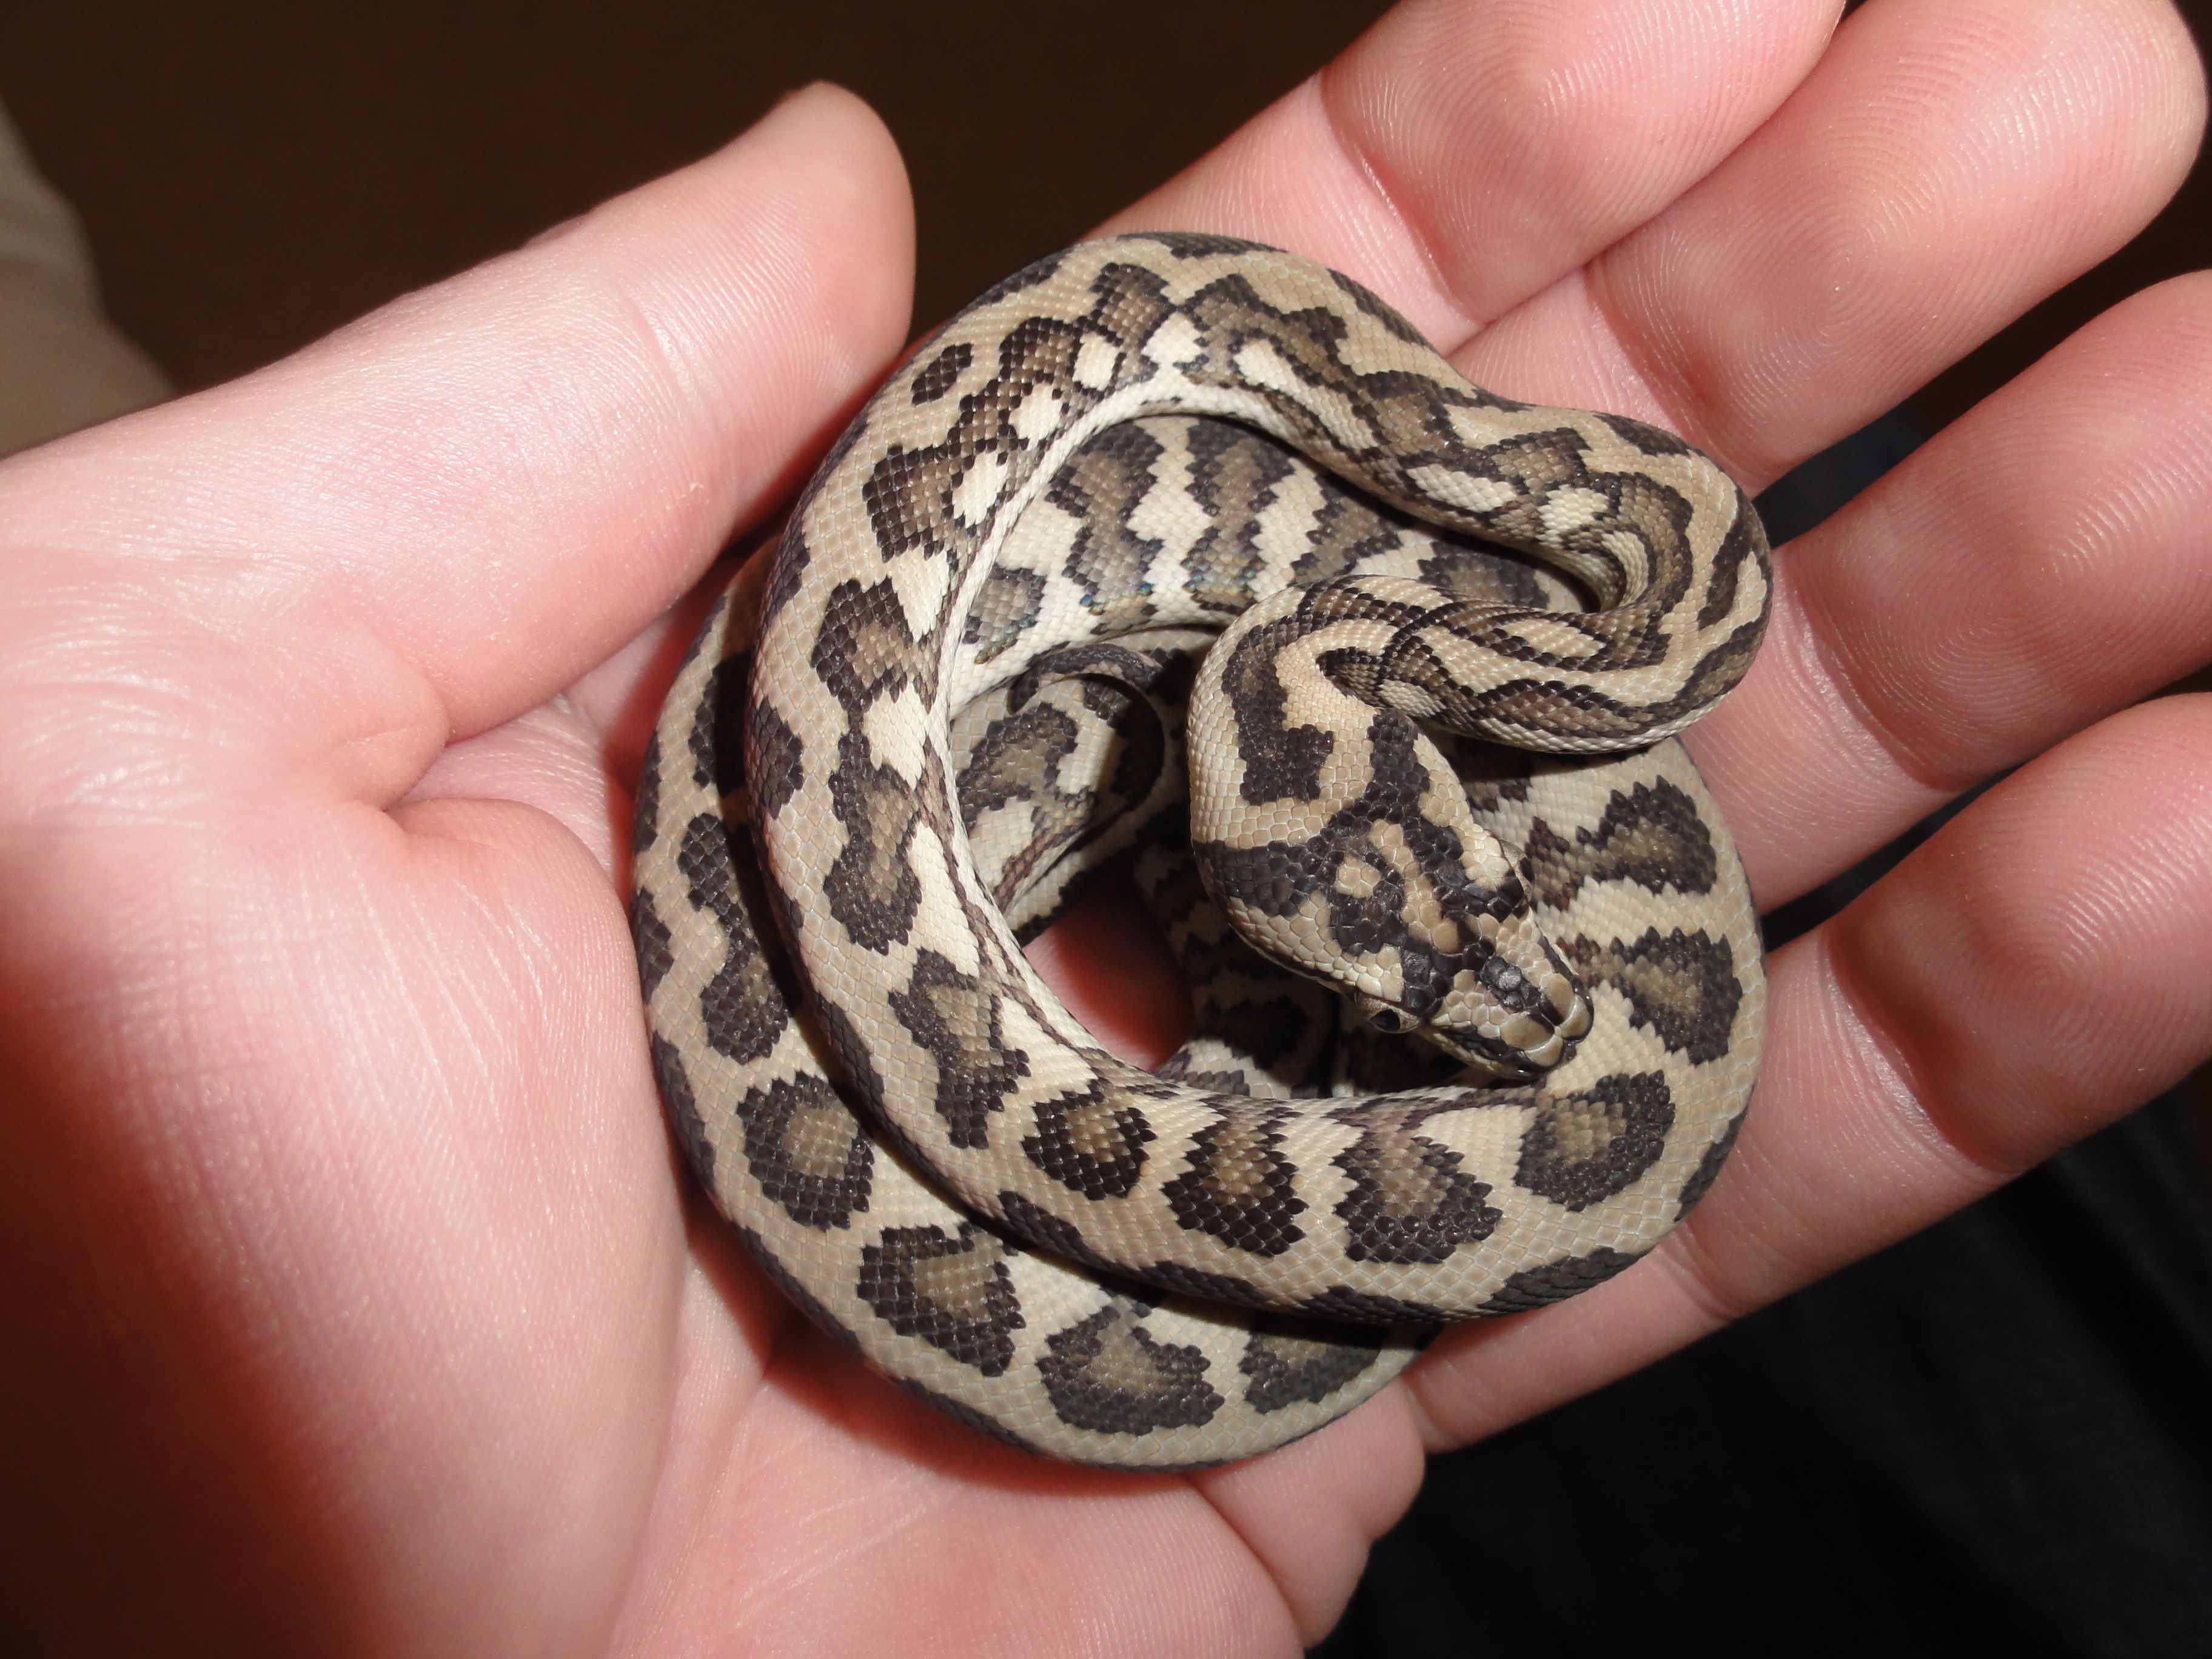 Pin On My Love Of Snakes 3